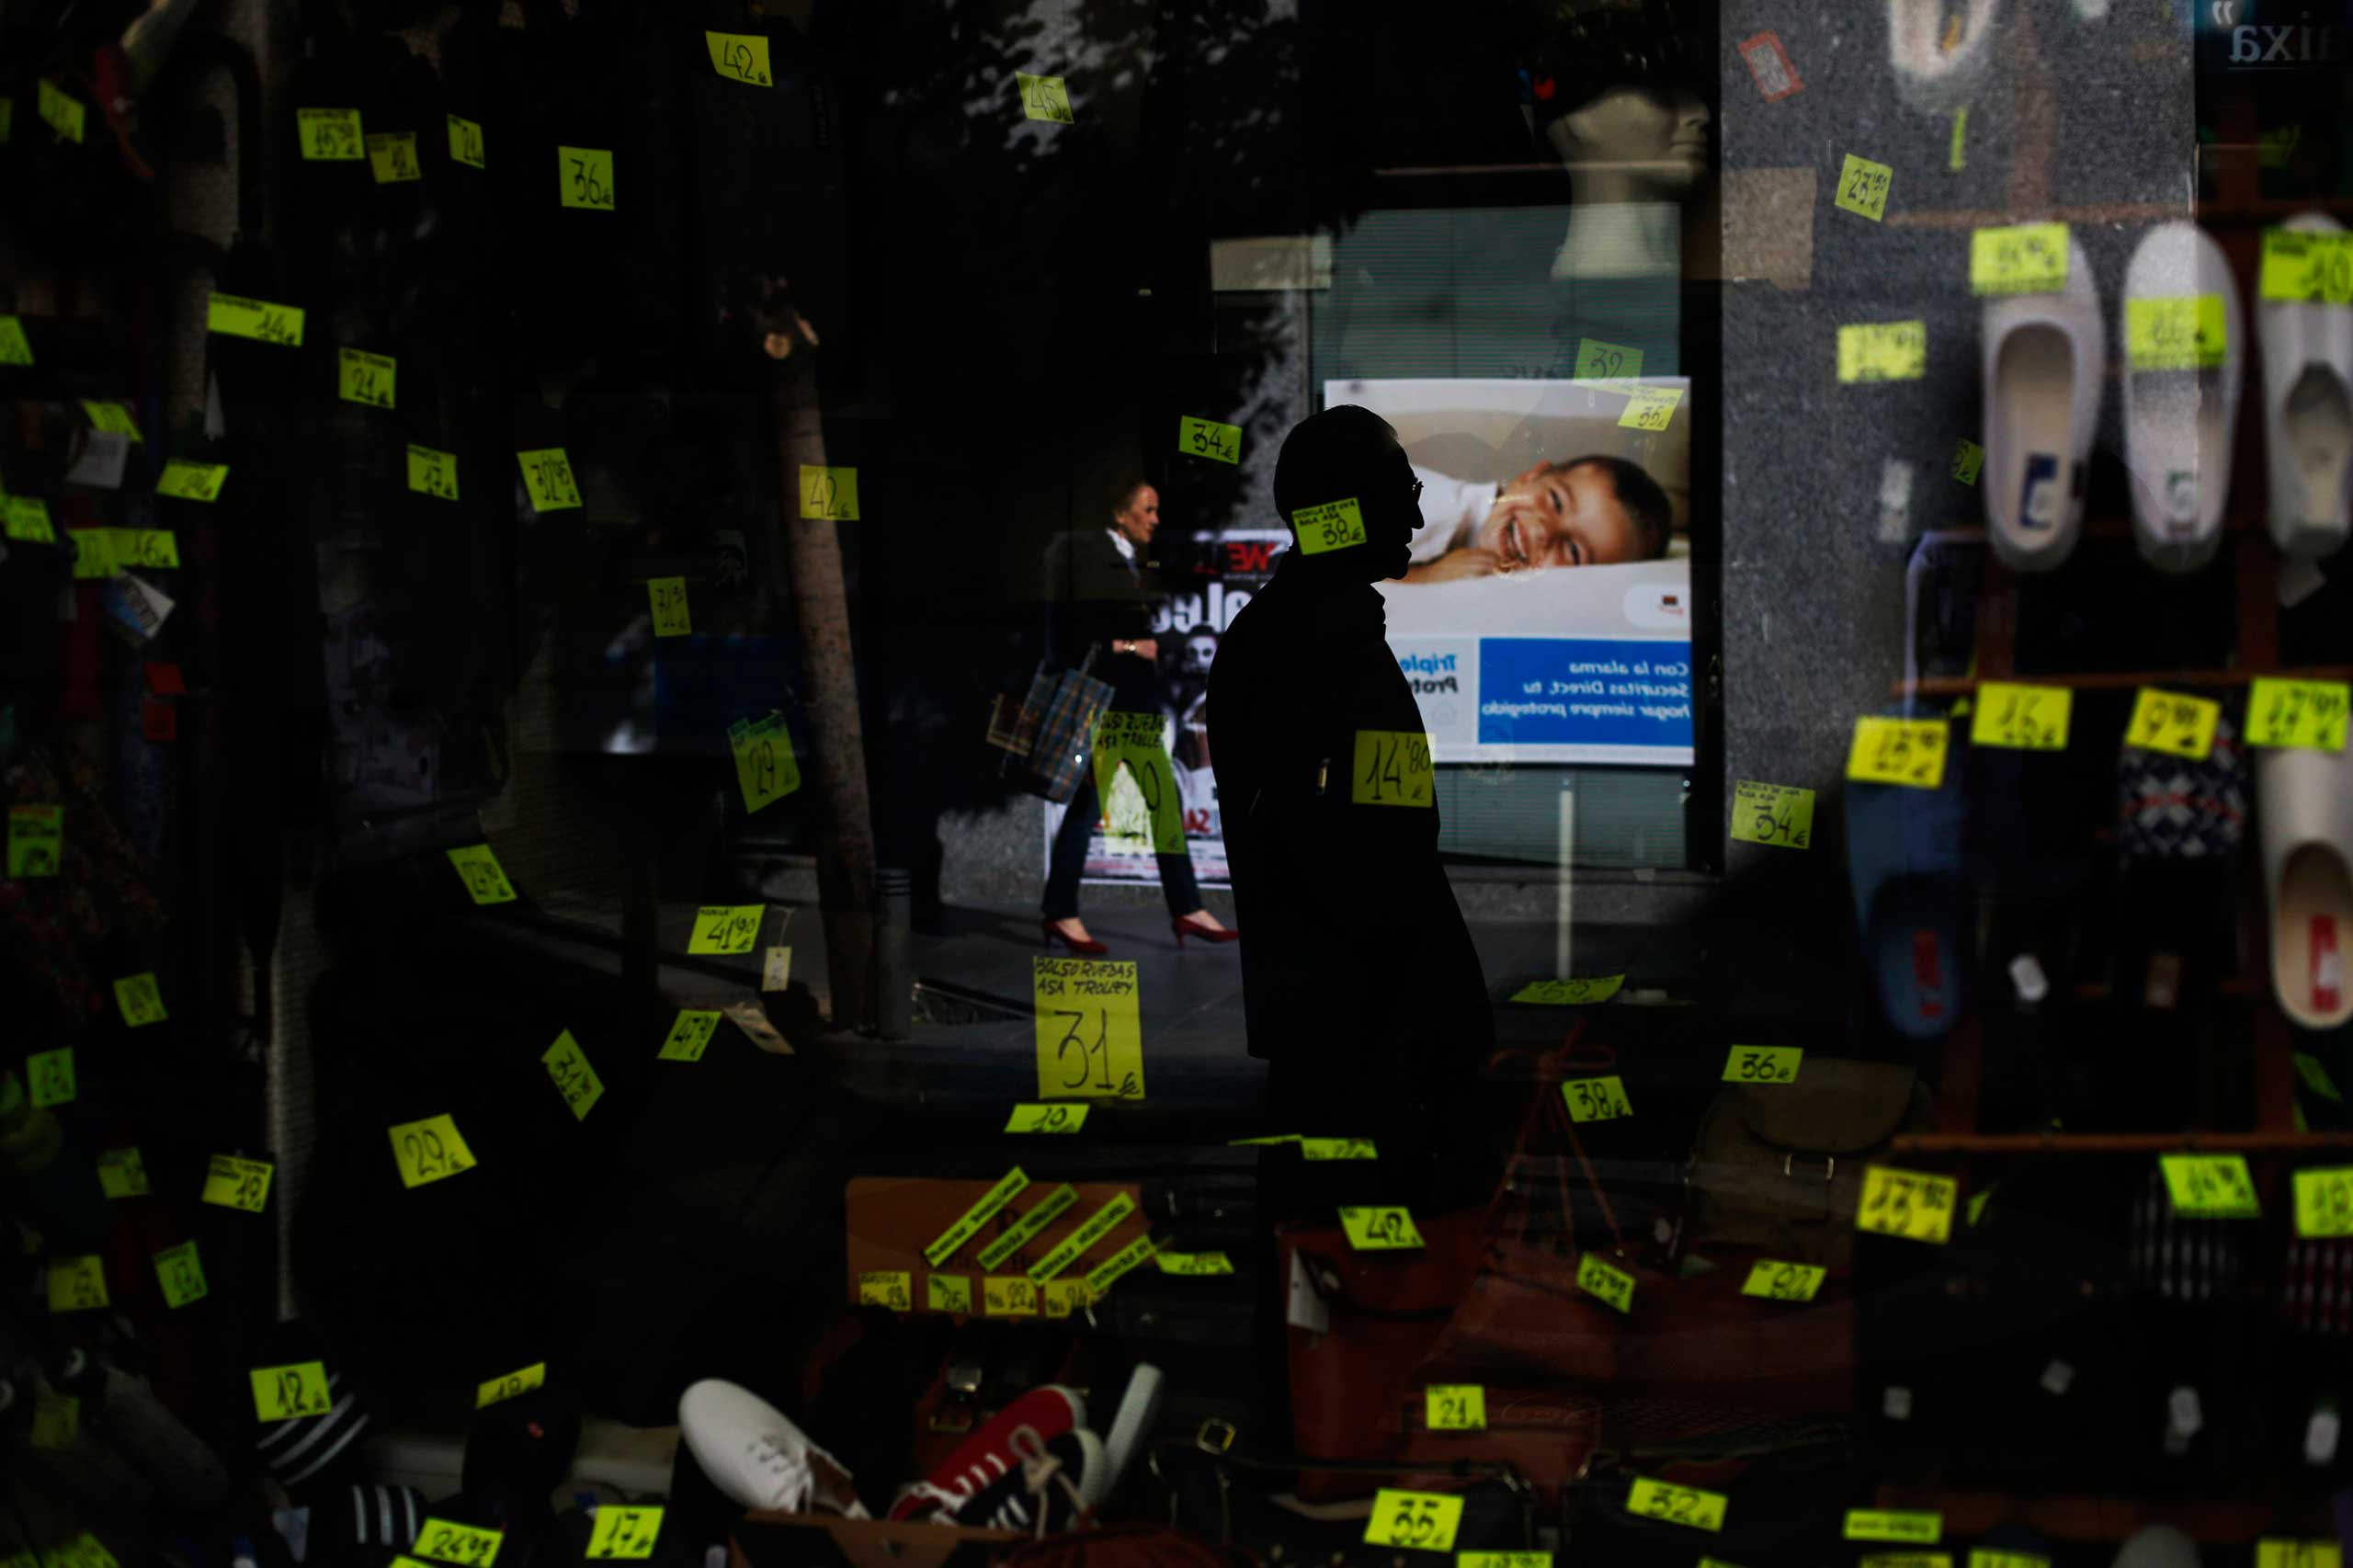 Oct. 30, 2014. People are reflected in the window of a shoe and handbag store in central Madrid. Spain's economy expanded for the fifth quarter running between July and September, but a slowing rate of growth along with falling consumer prices suggested the recovery may be losing momentum.